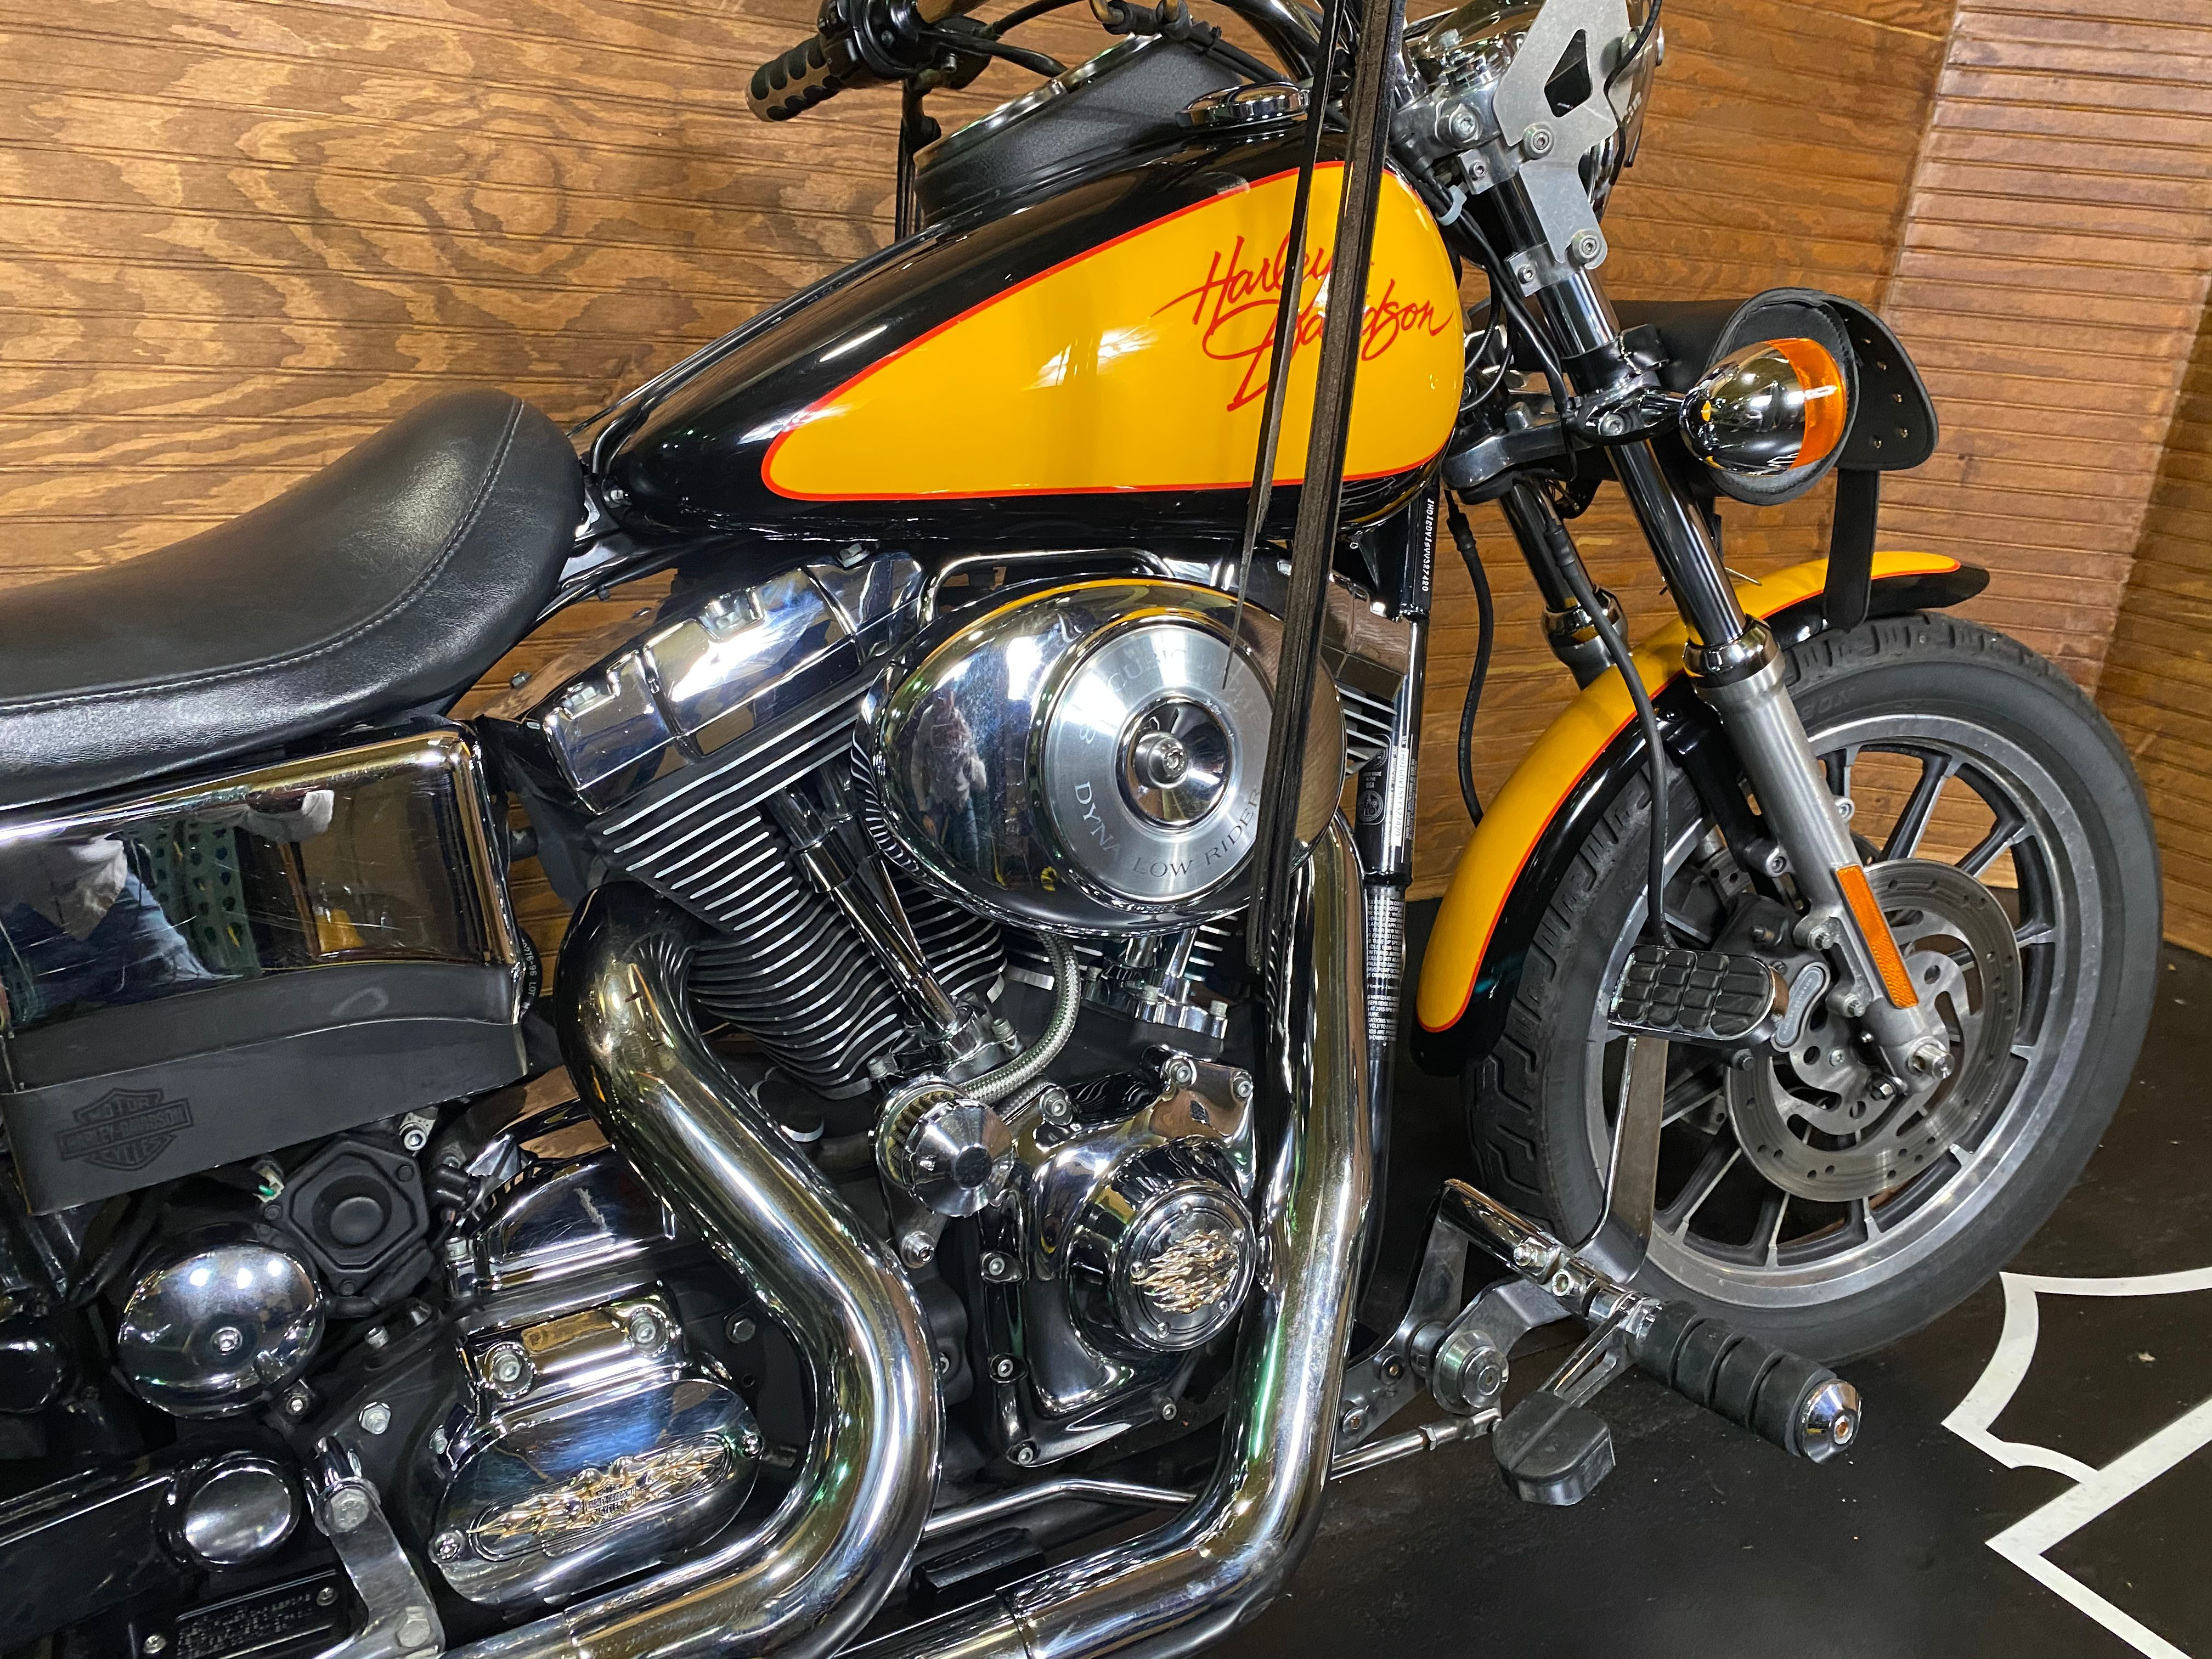 Pre-Owned 2000 Harley-Davidson Low Rider